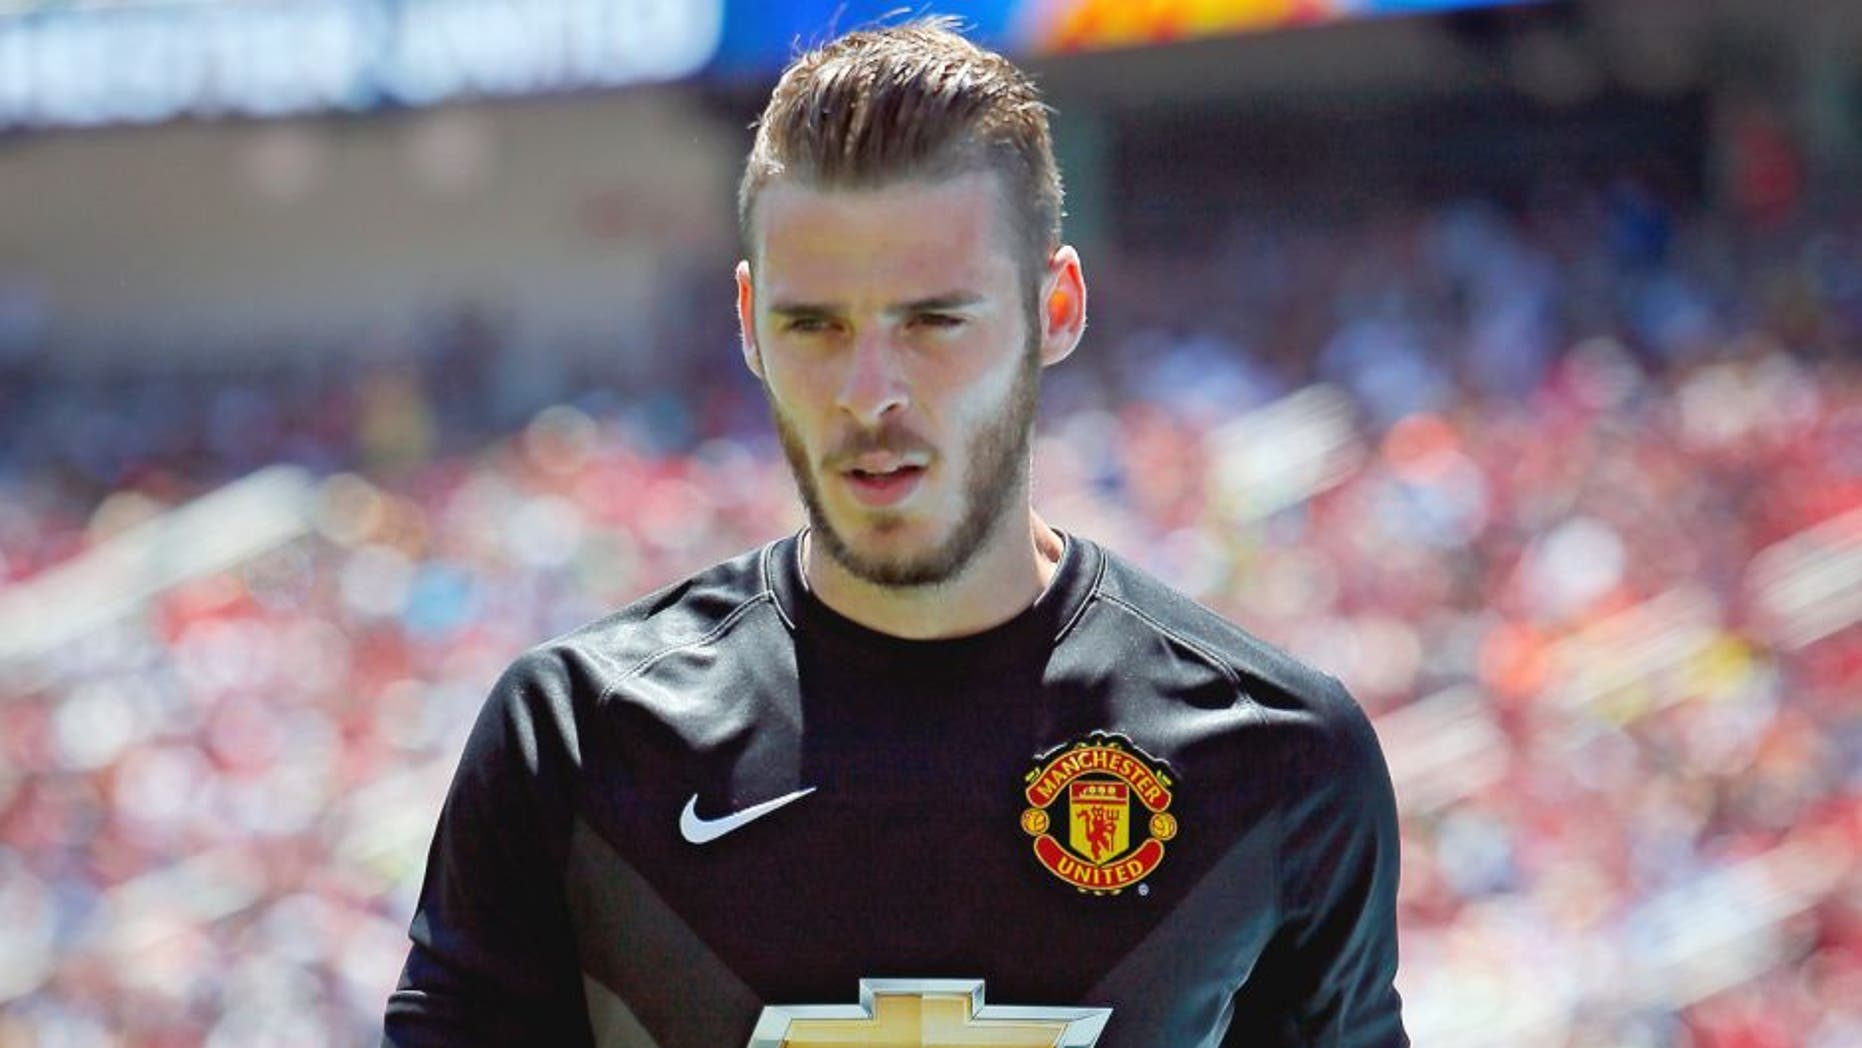 SANTA CLARA, CA - JULY 25: Goal keeper David De Gea #1 of Manchester United walks to pick up the ball out of bounds against FC Barcelona during the International Champions Cup on July 25, 2015 at Levi's Stadium in Santa Clara, California. Manchester United won 3-1. (Photo by Brian Bahr/Getty Images)